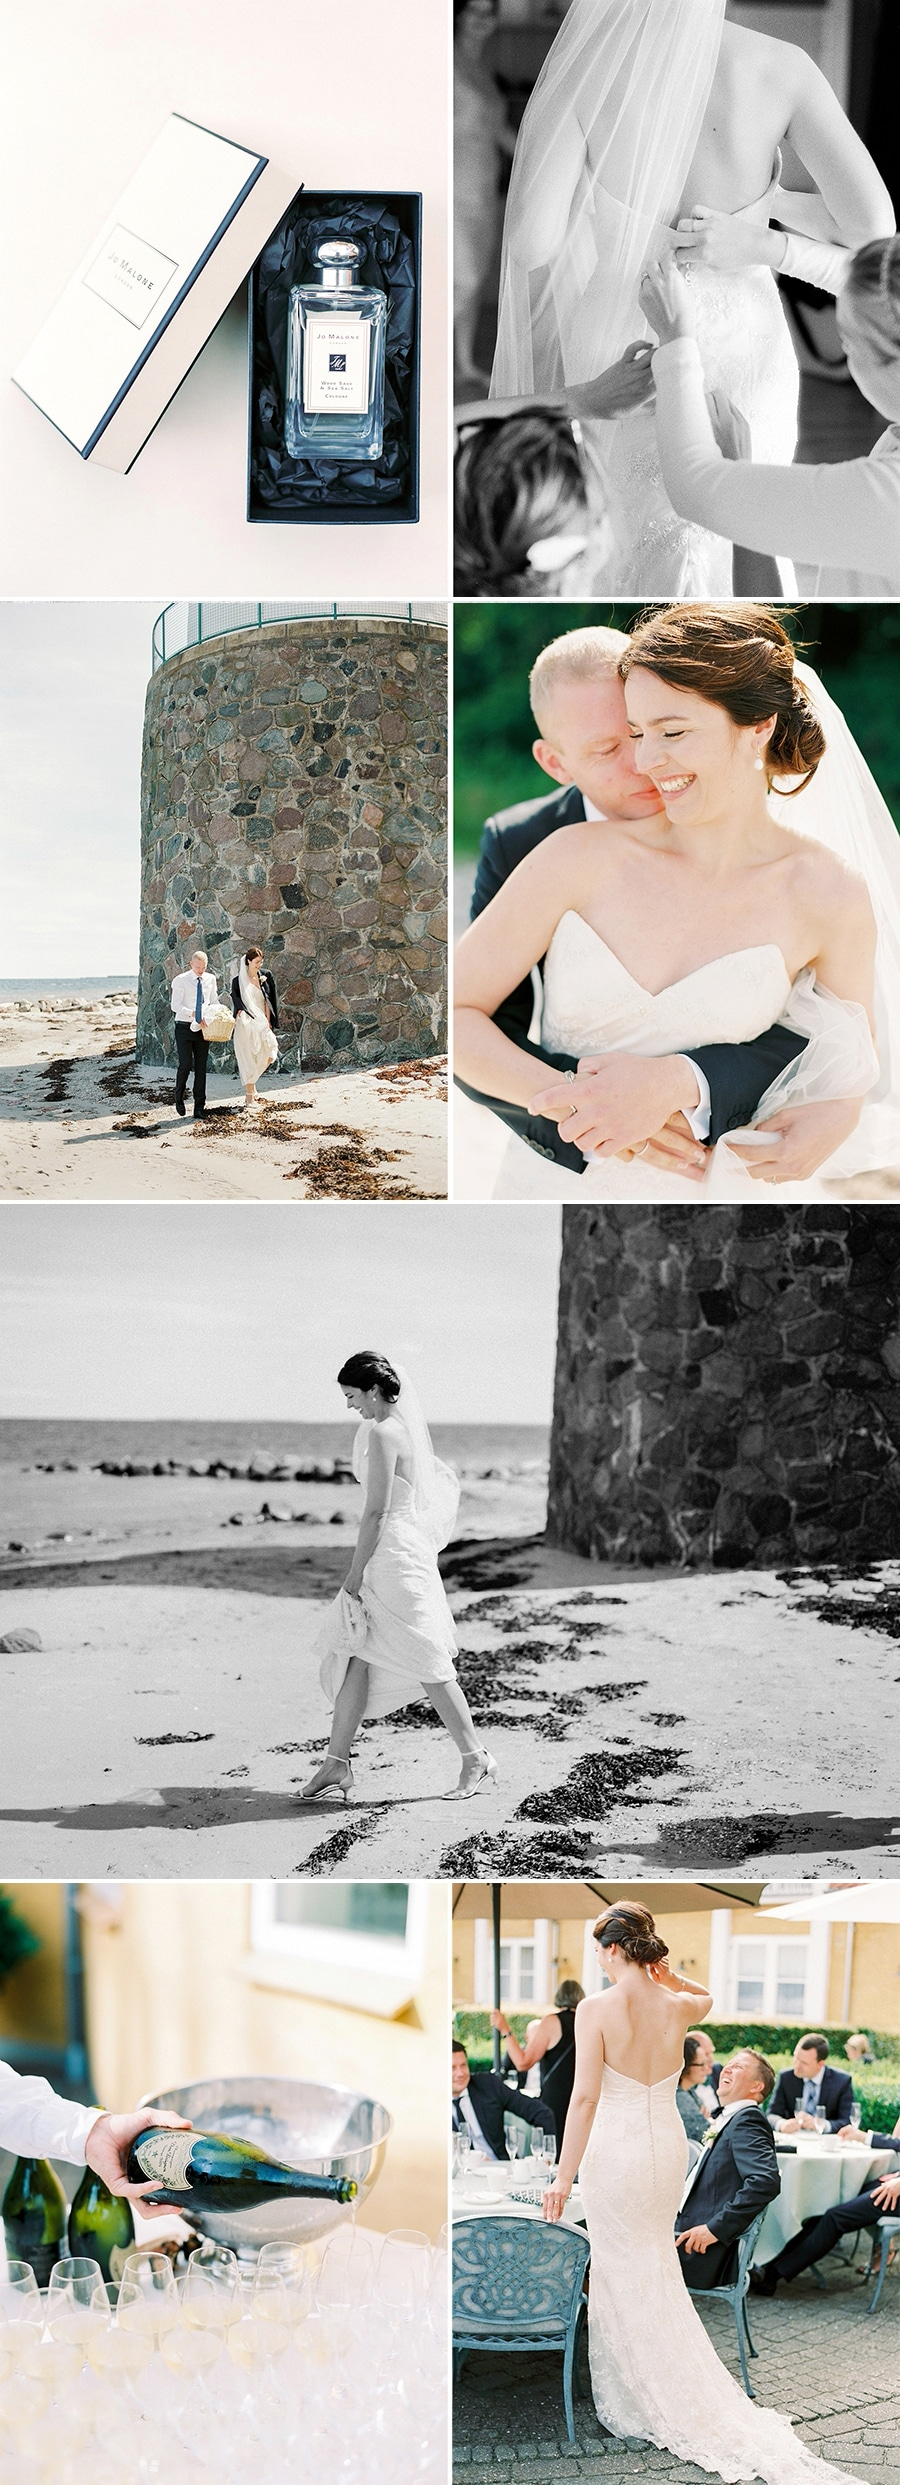 2 Brides Photography Wedding Fakkelgaarden Denmark